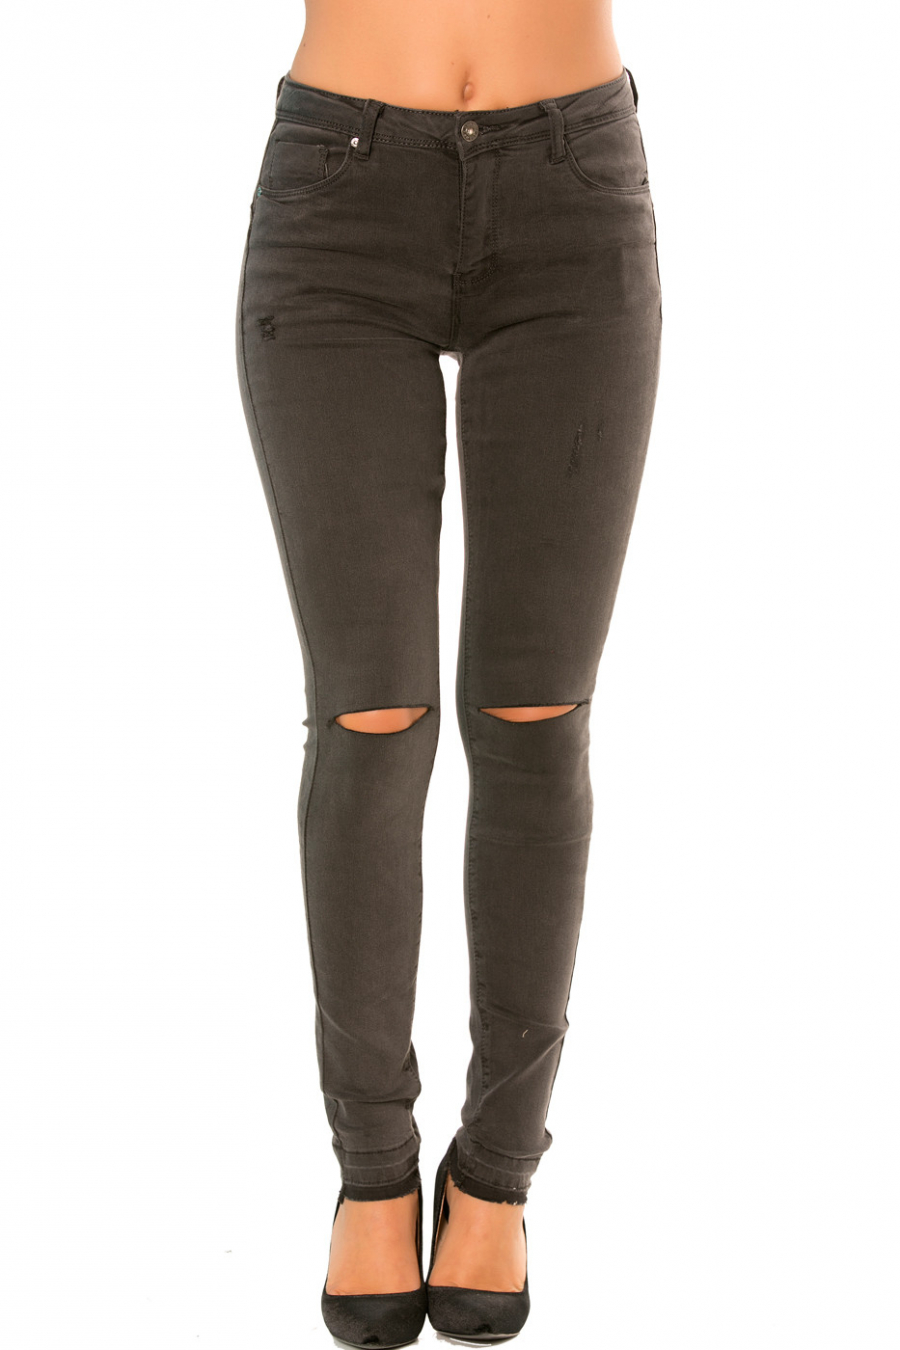 Anthracite slim jeans pants with holes at the knees. PTL-S820